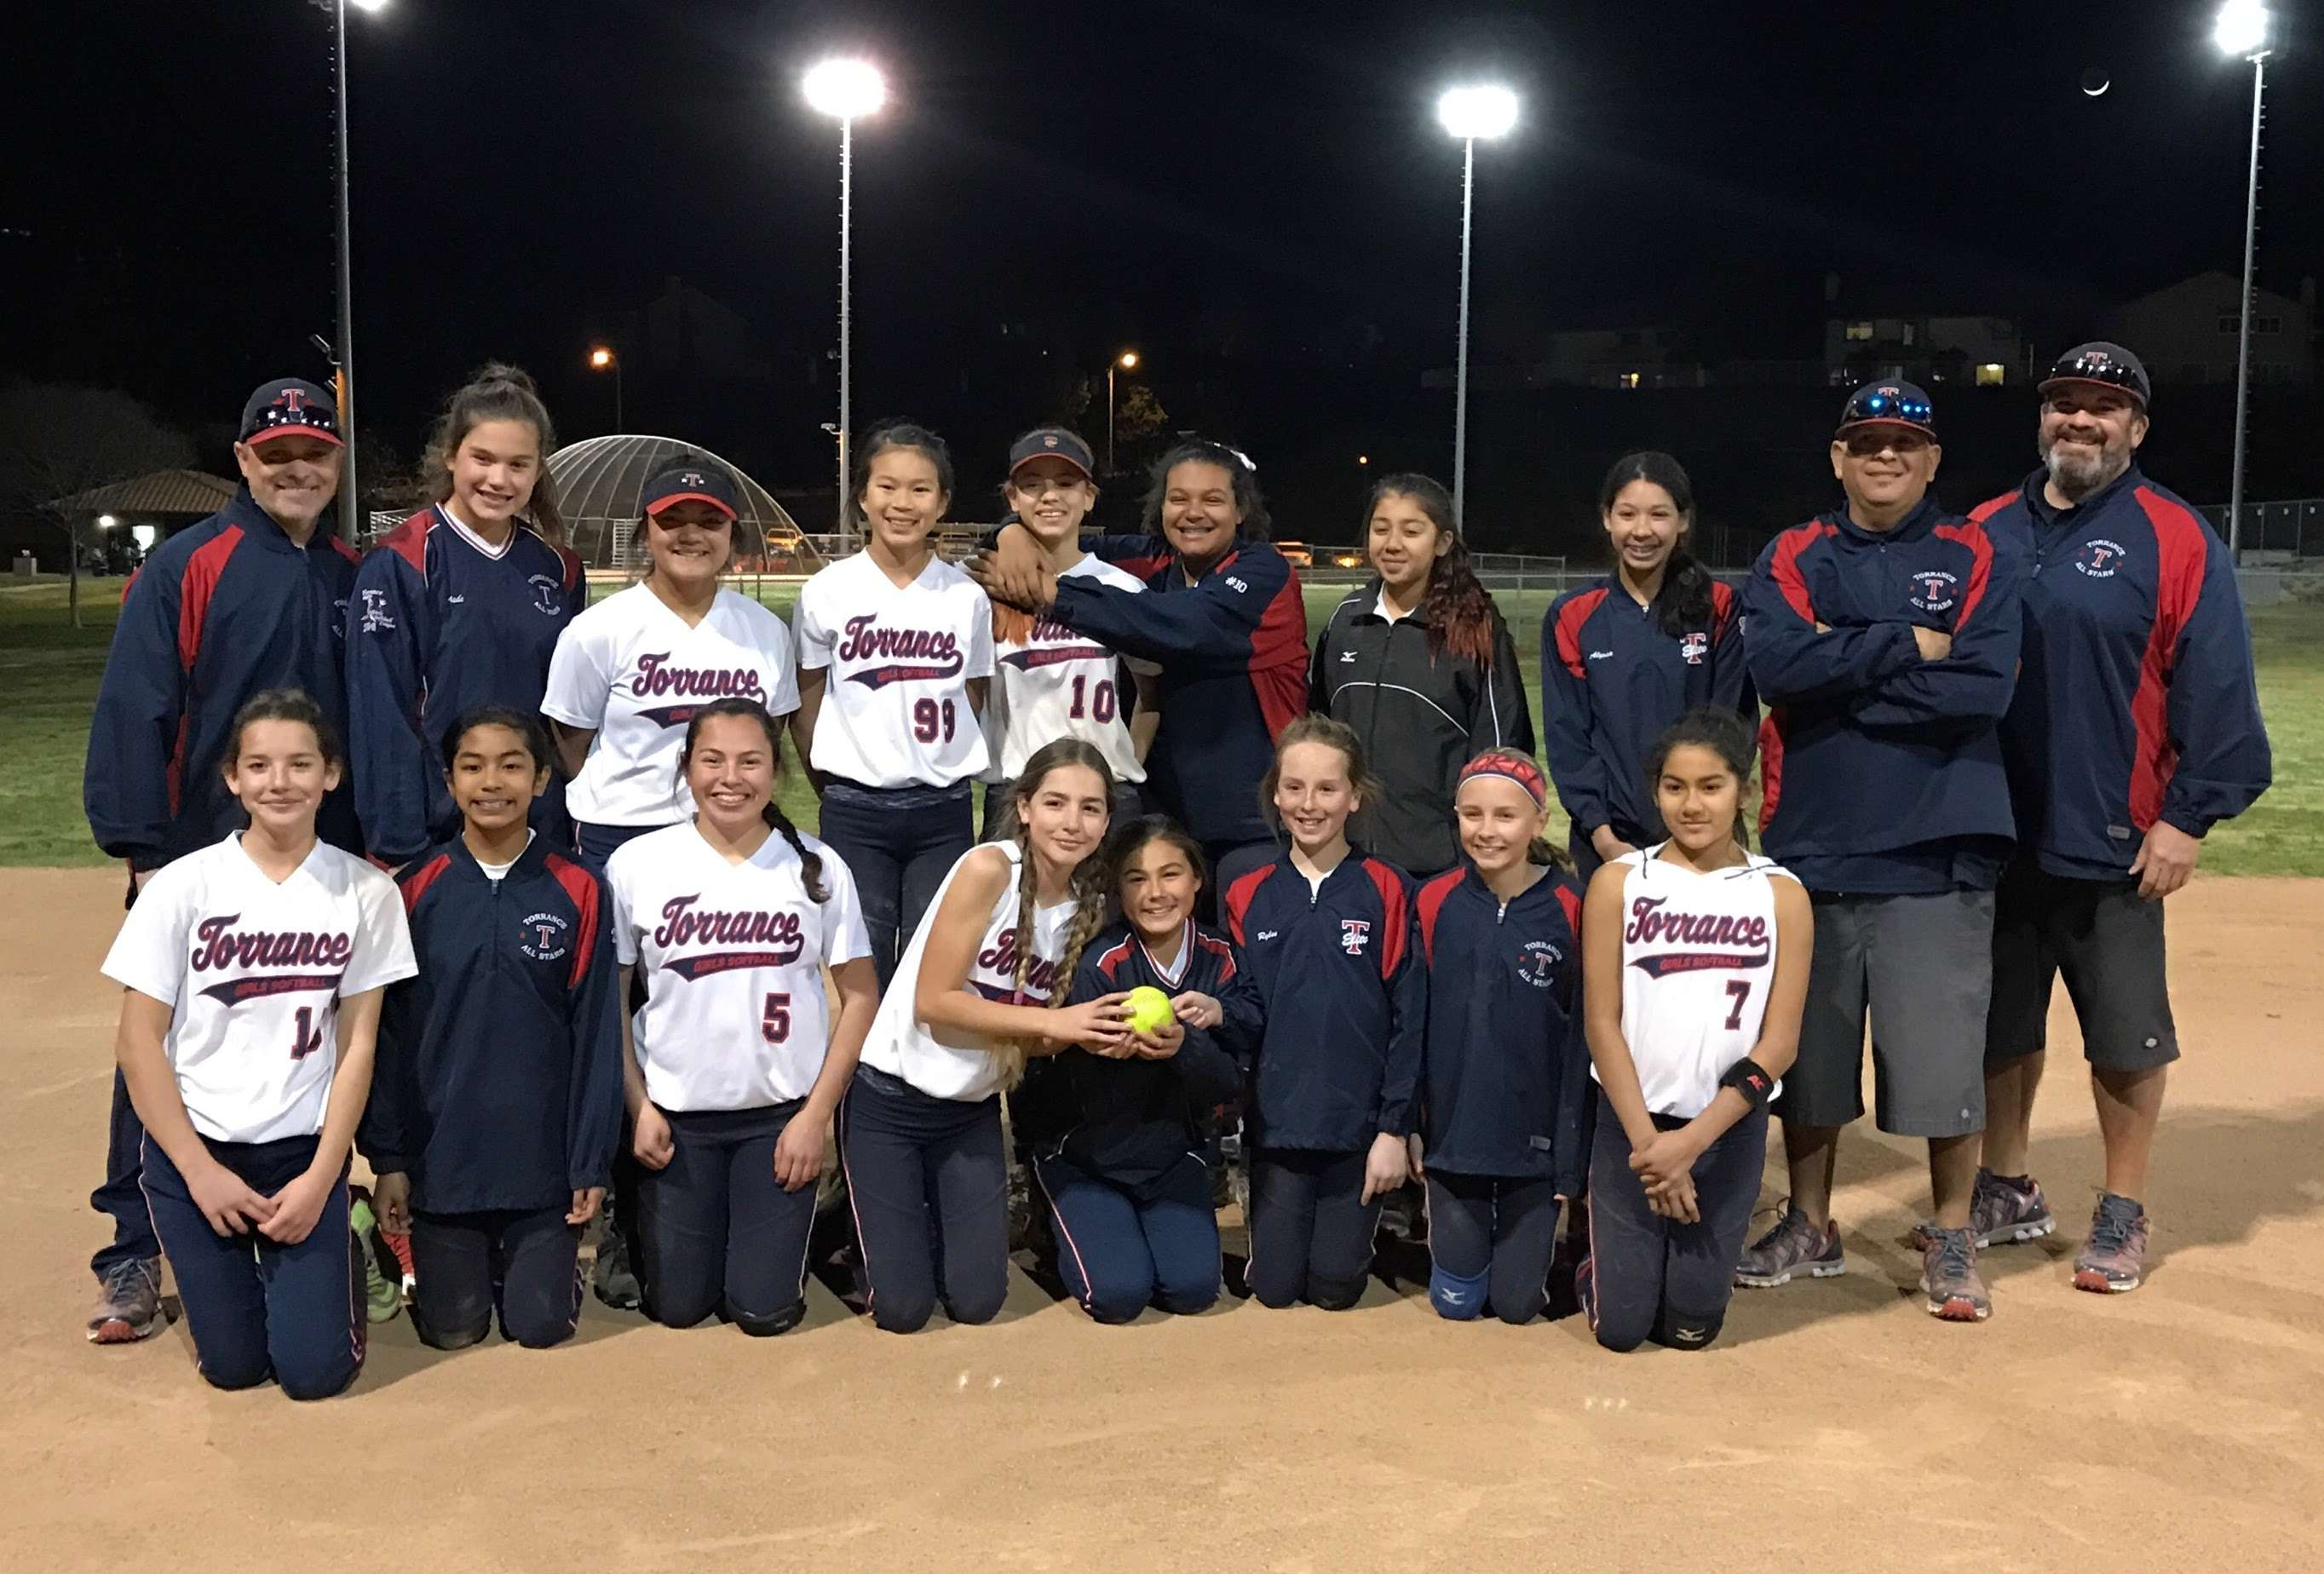 12U Select in Elsinore